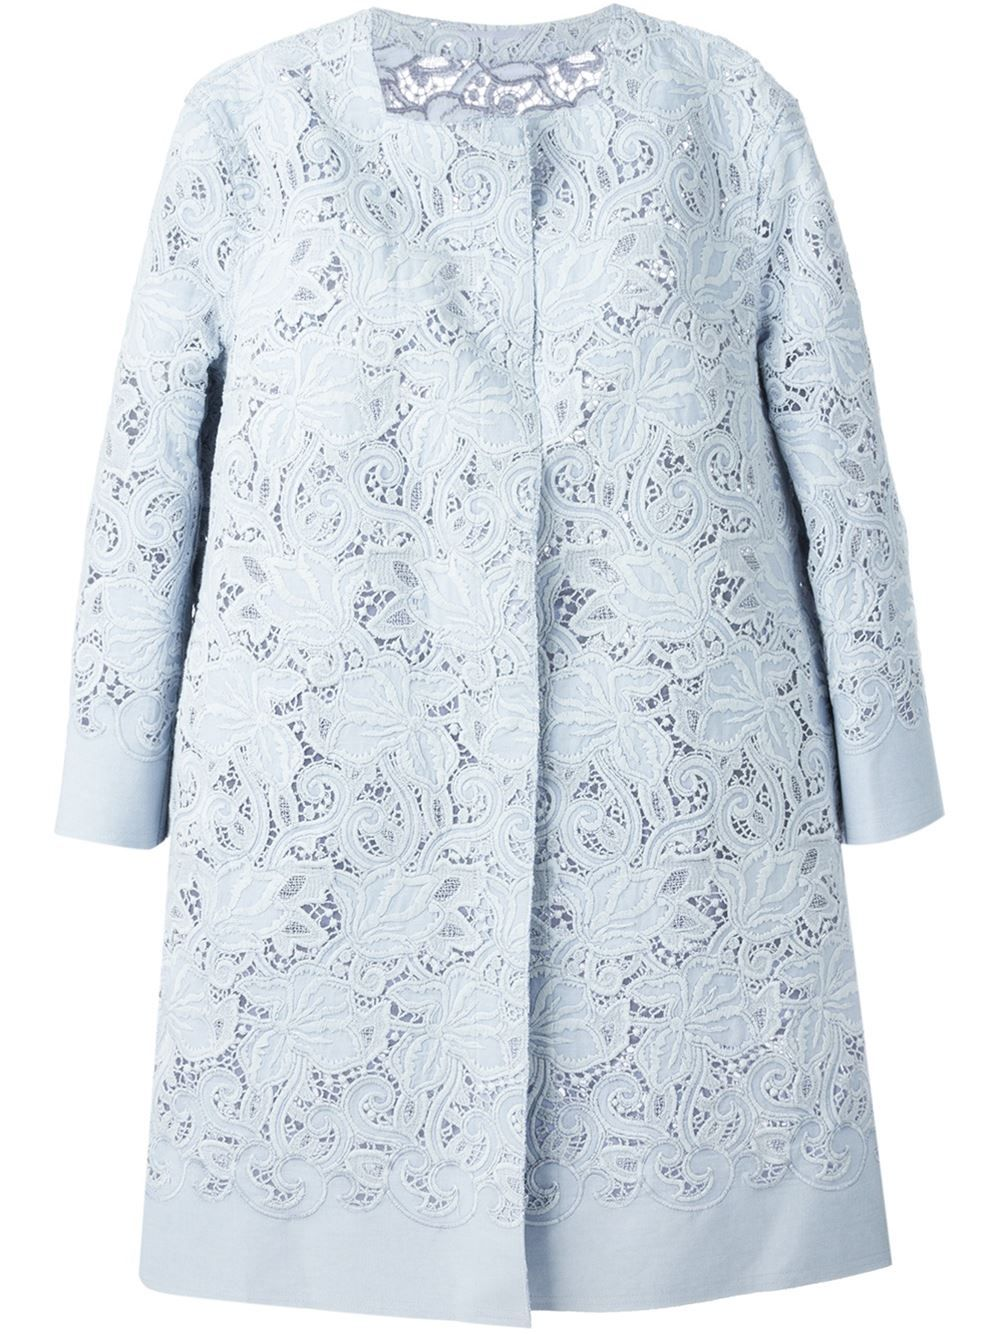 Blue lace overcoat with white embroidery Ermanno Scervino SkkE0i